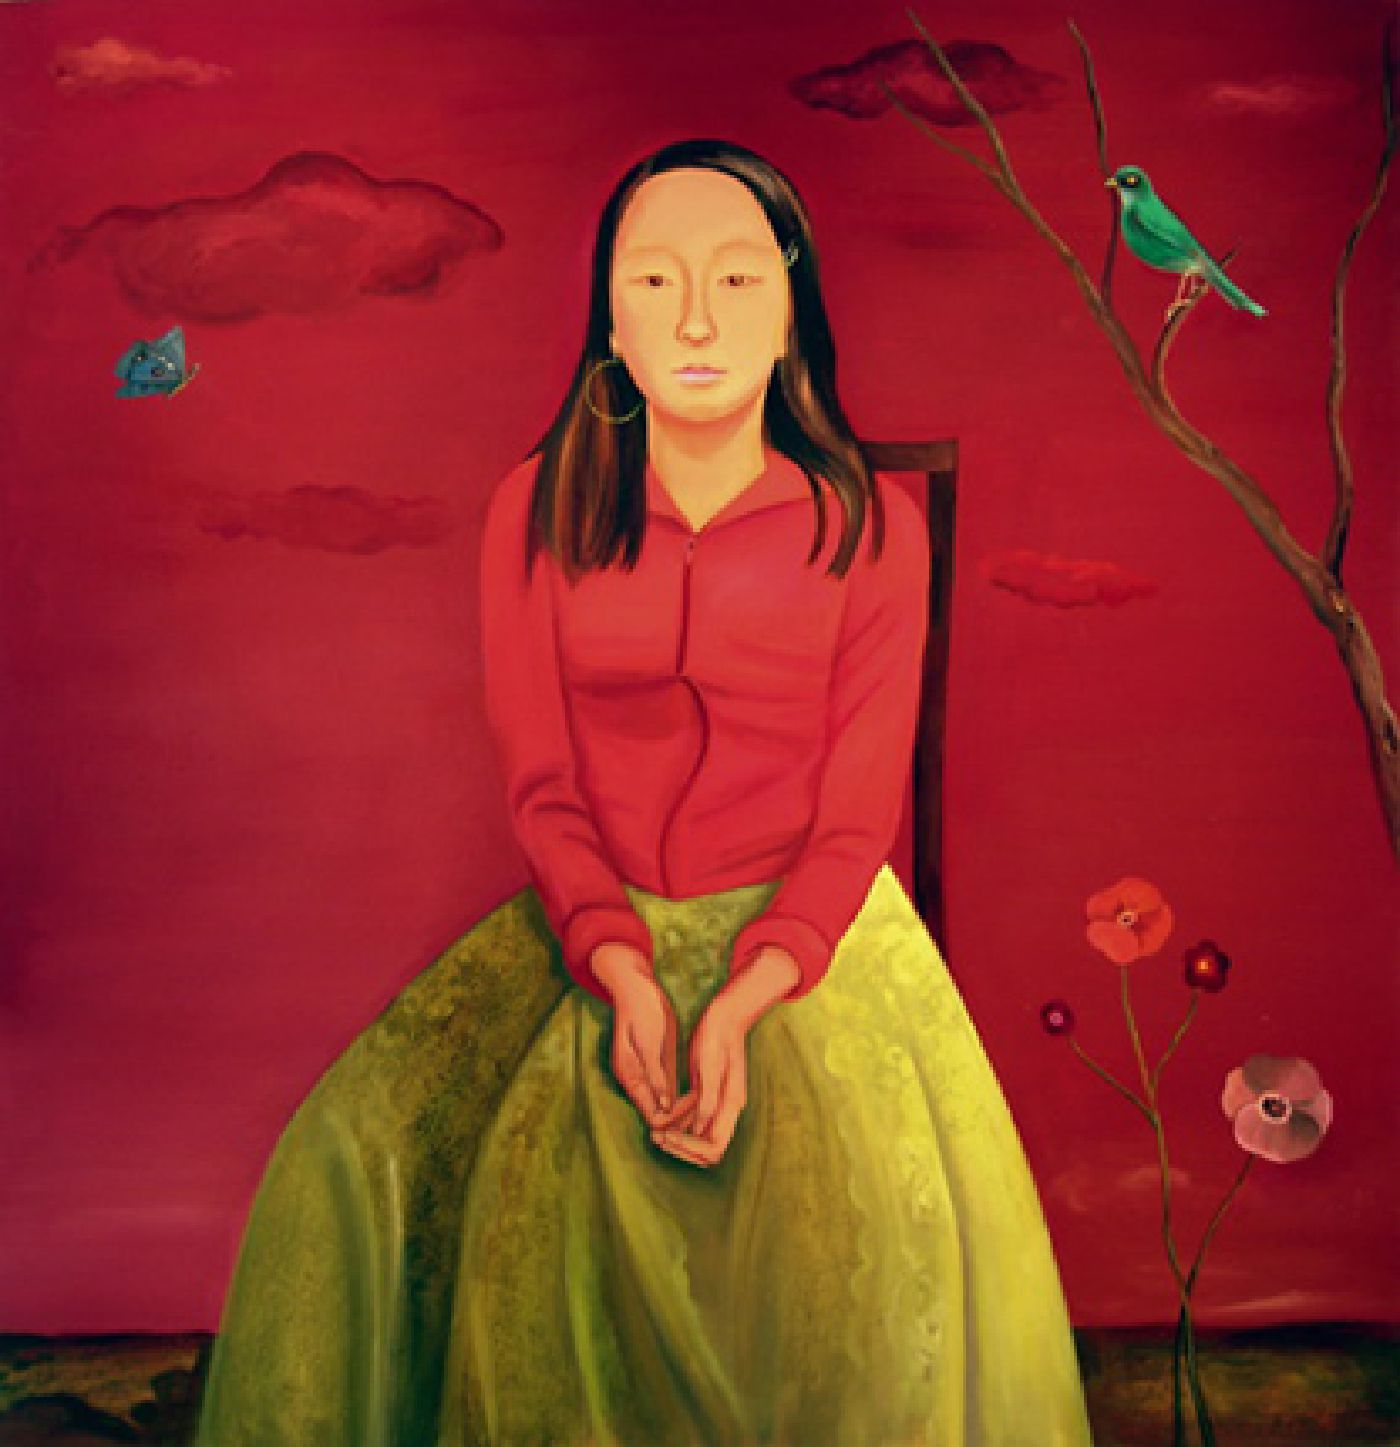 In a Colorful World (Girl with Red Sky and Green Skirt) - oil on canvas, 52 inches x 50 inches, 2009